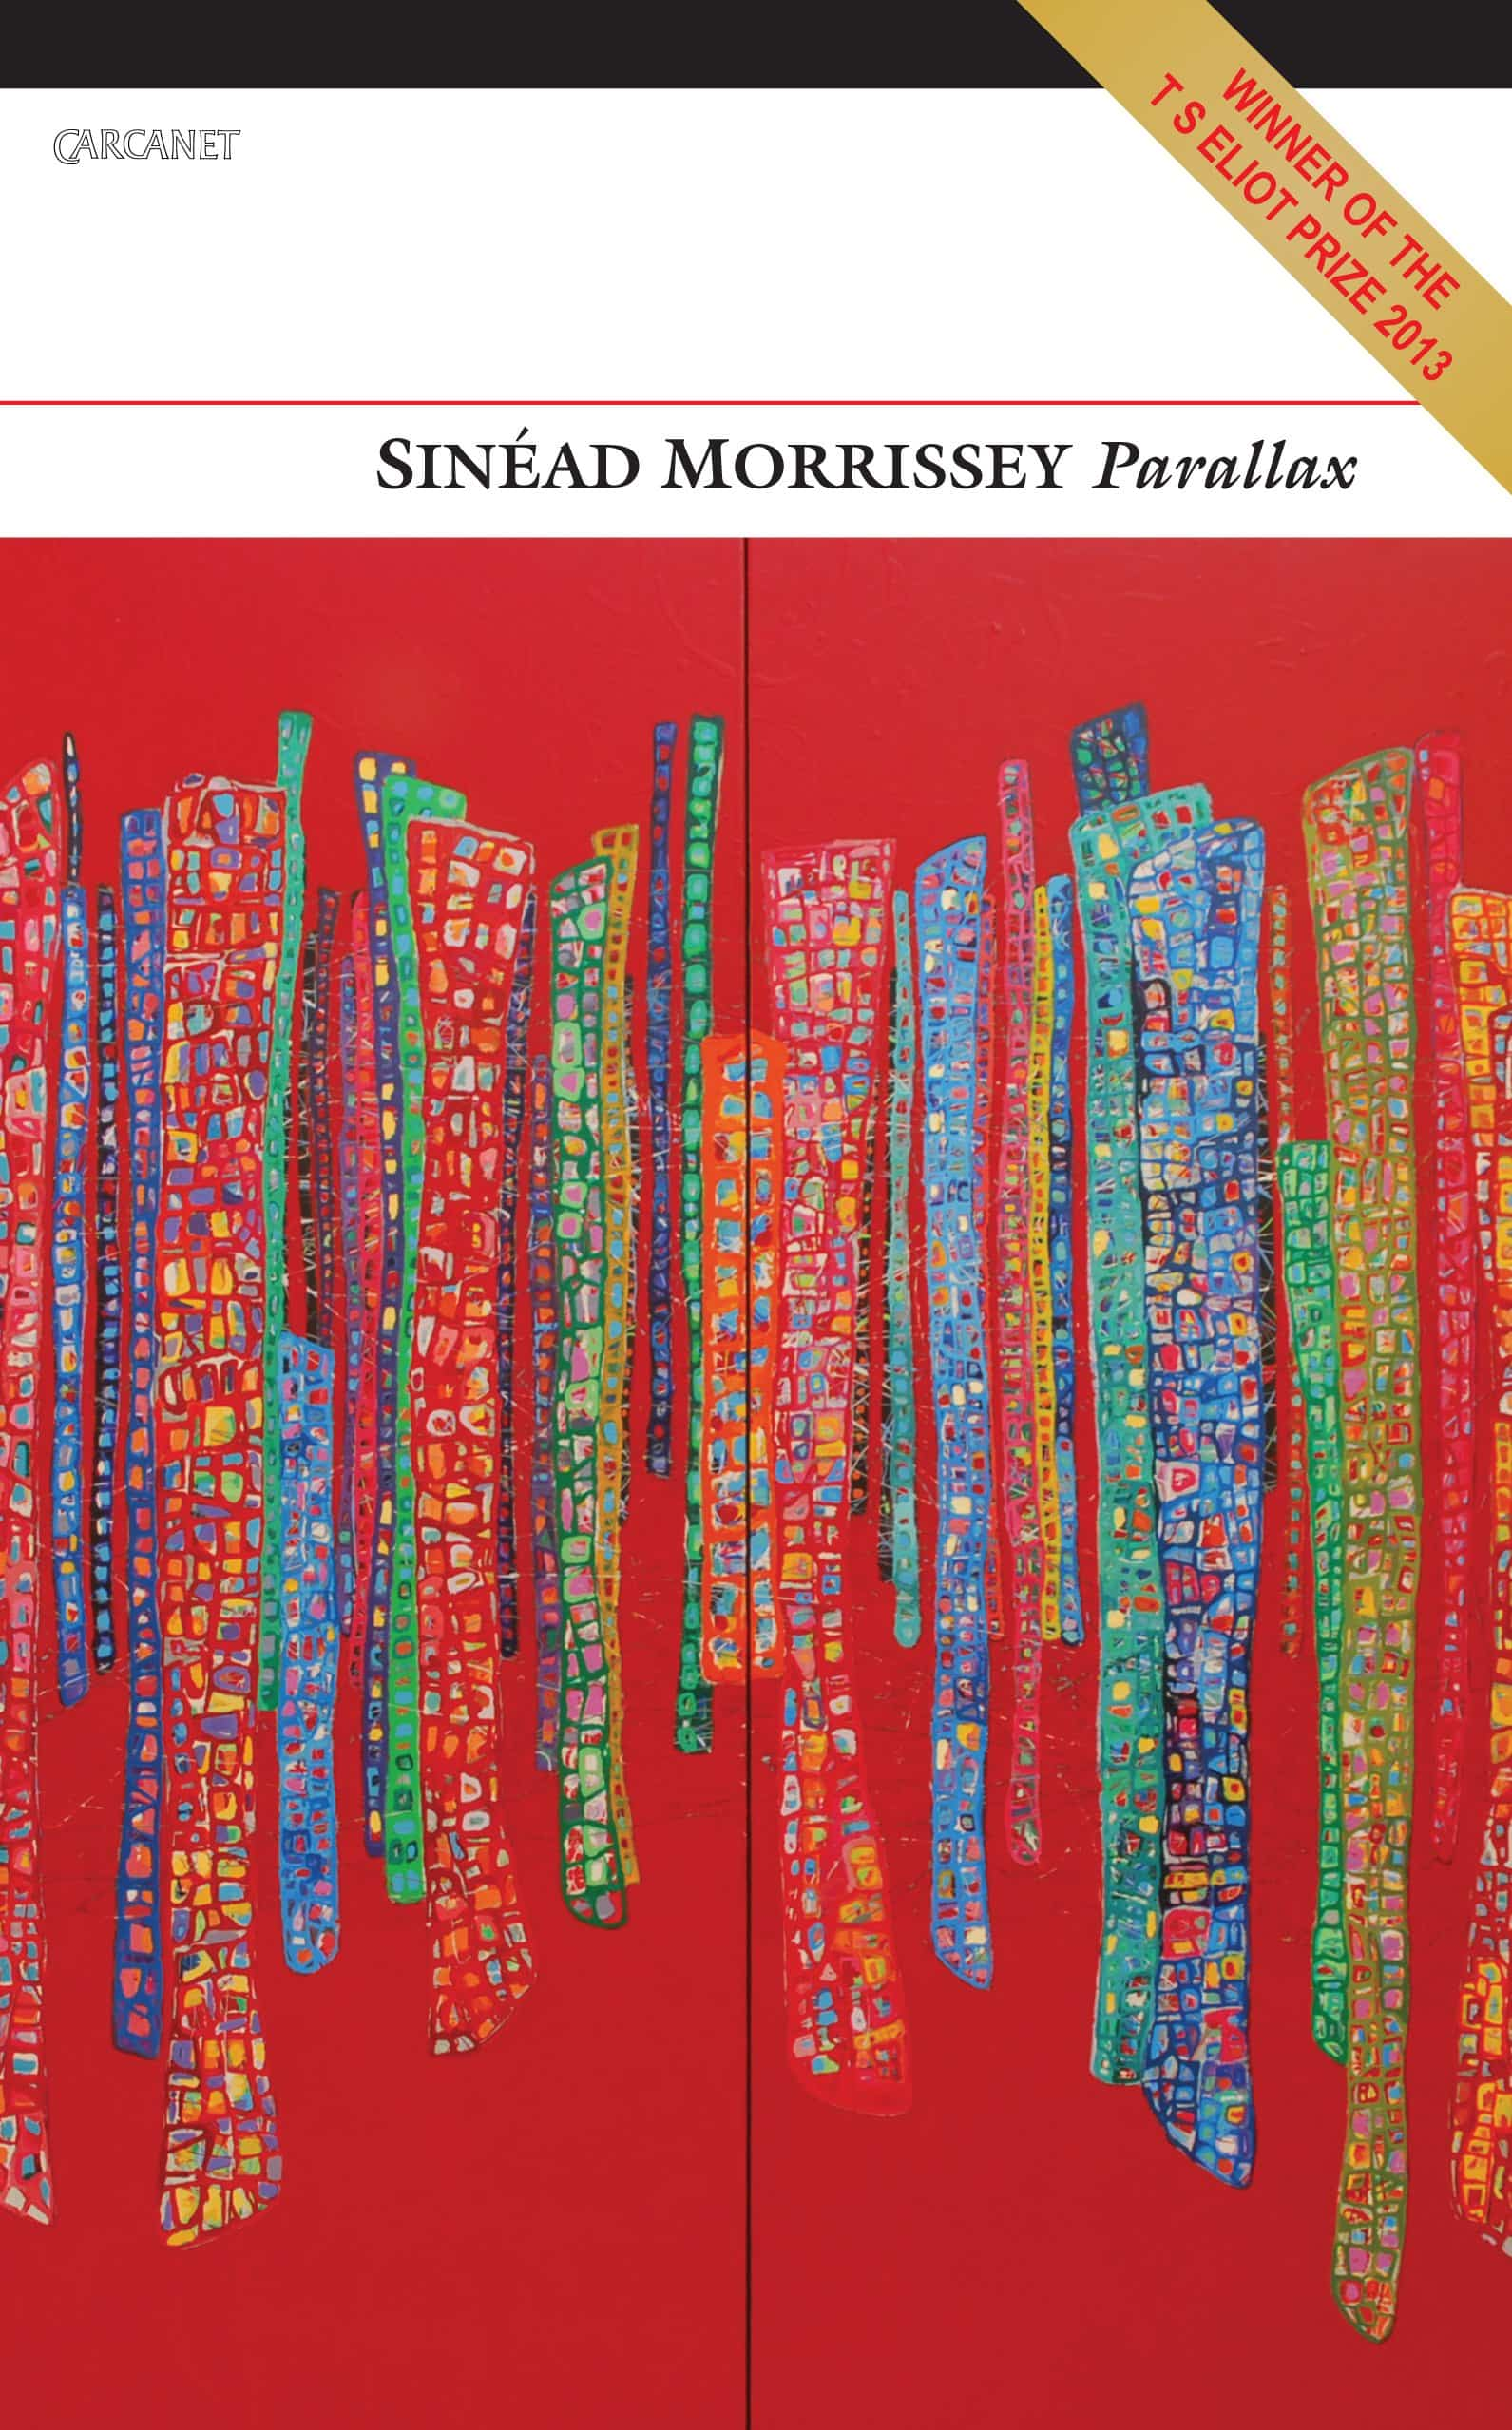 Parallax by Sinéad Morrissey - famous modern irish poets